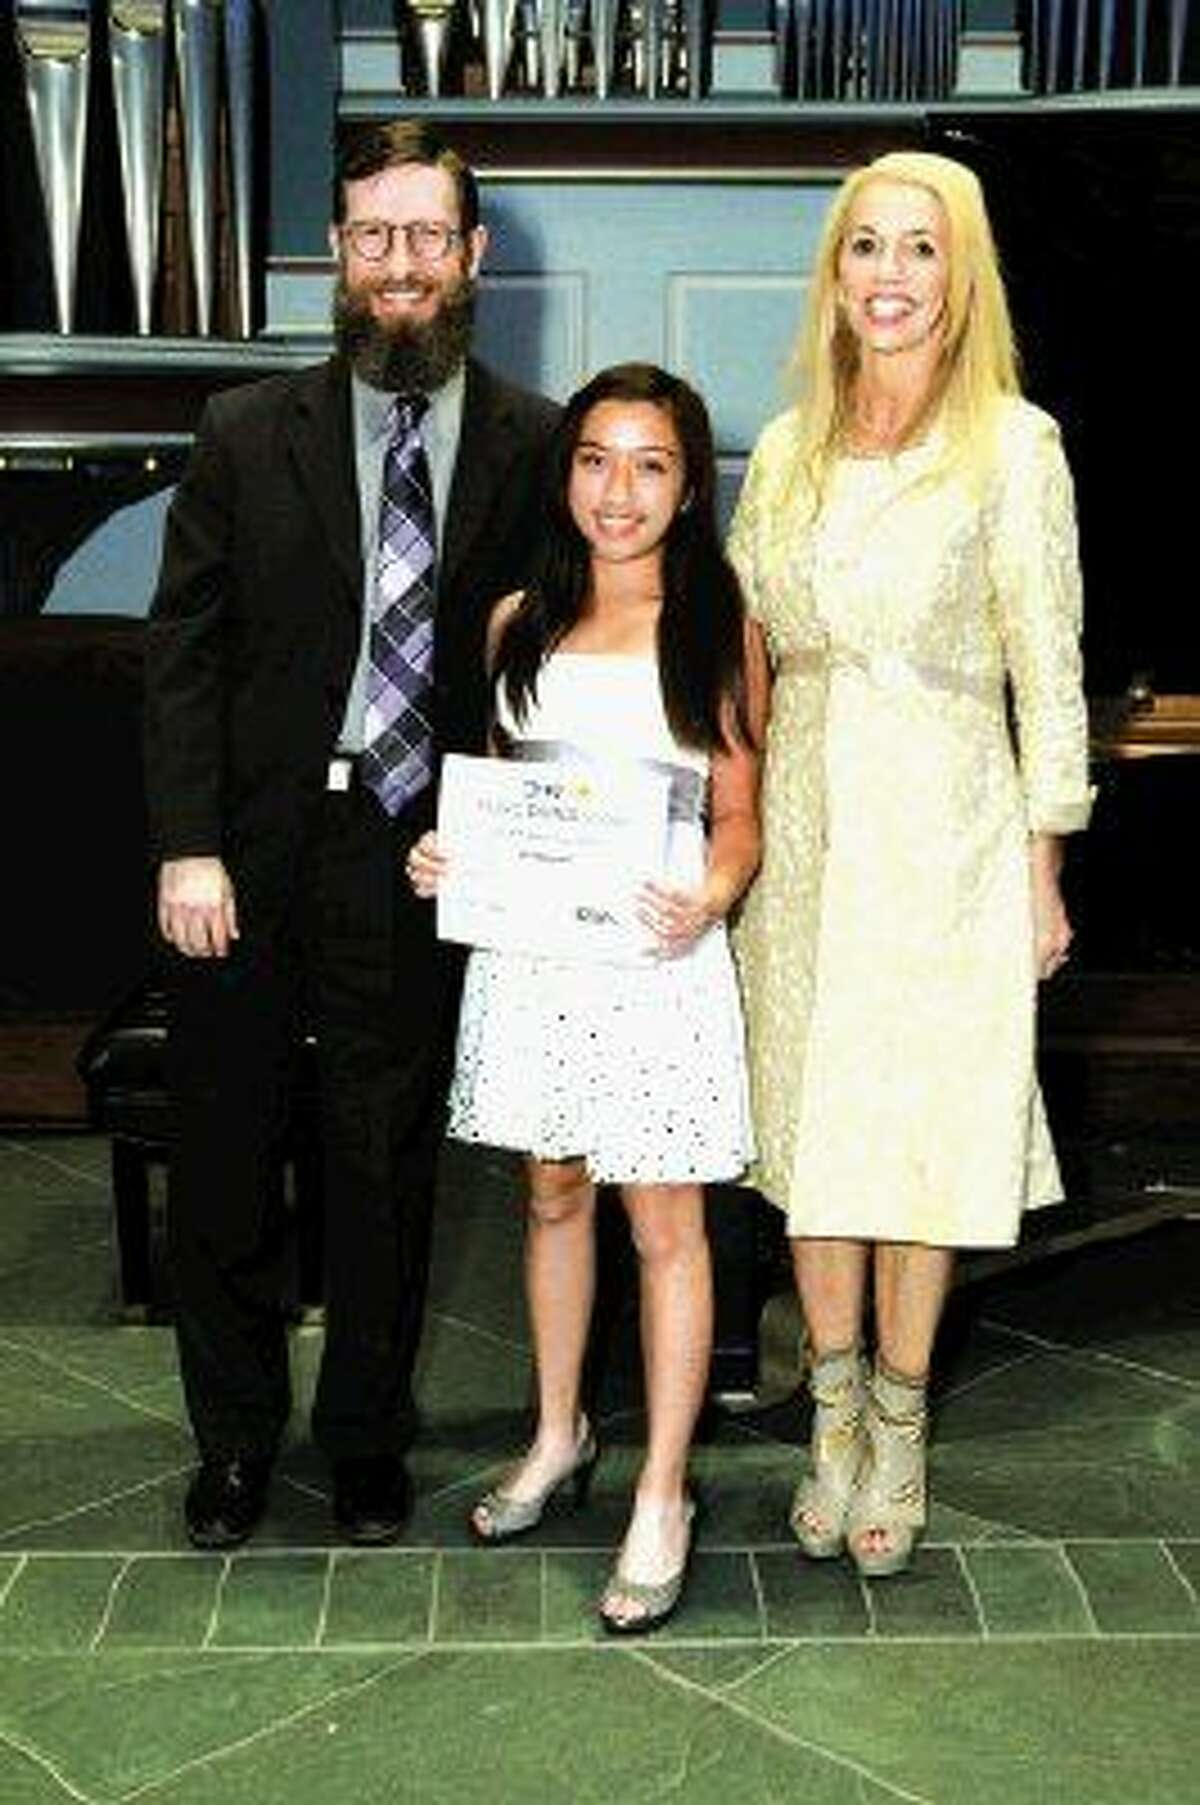 Pianist Vi Nguyen accepts her Music Doing Good scholarship certificate with program director Rodney Waters and president and founder Marie Taylor Bosarge.